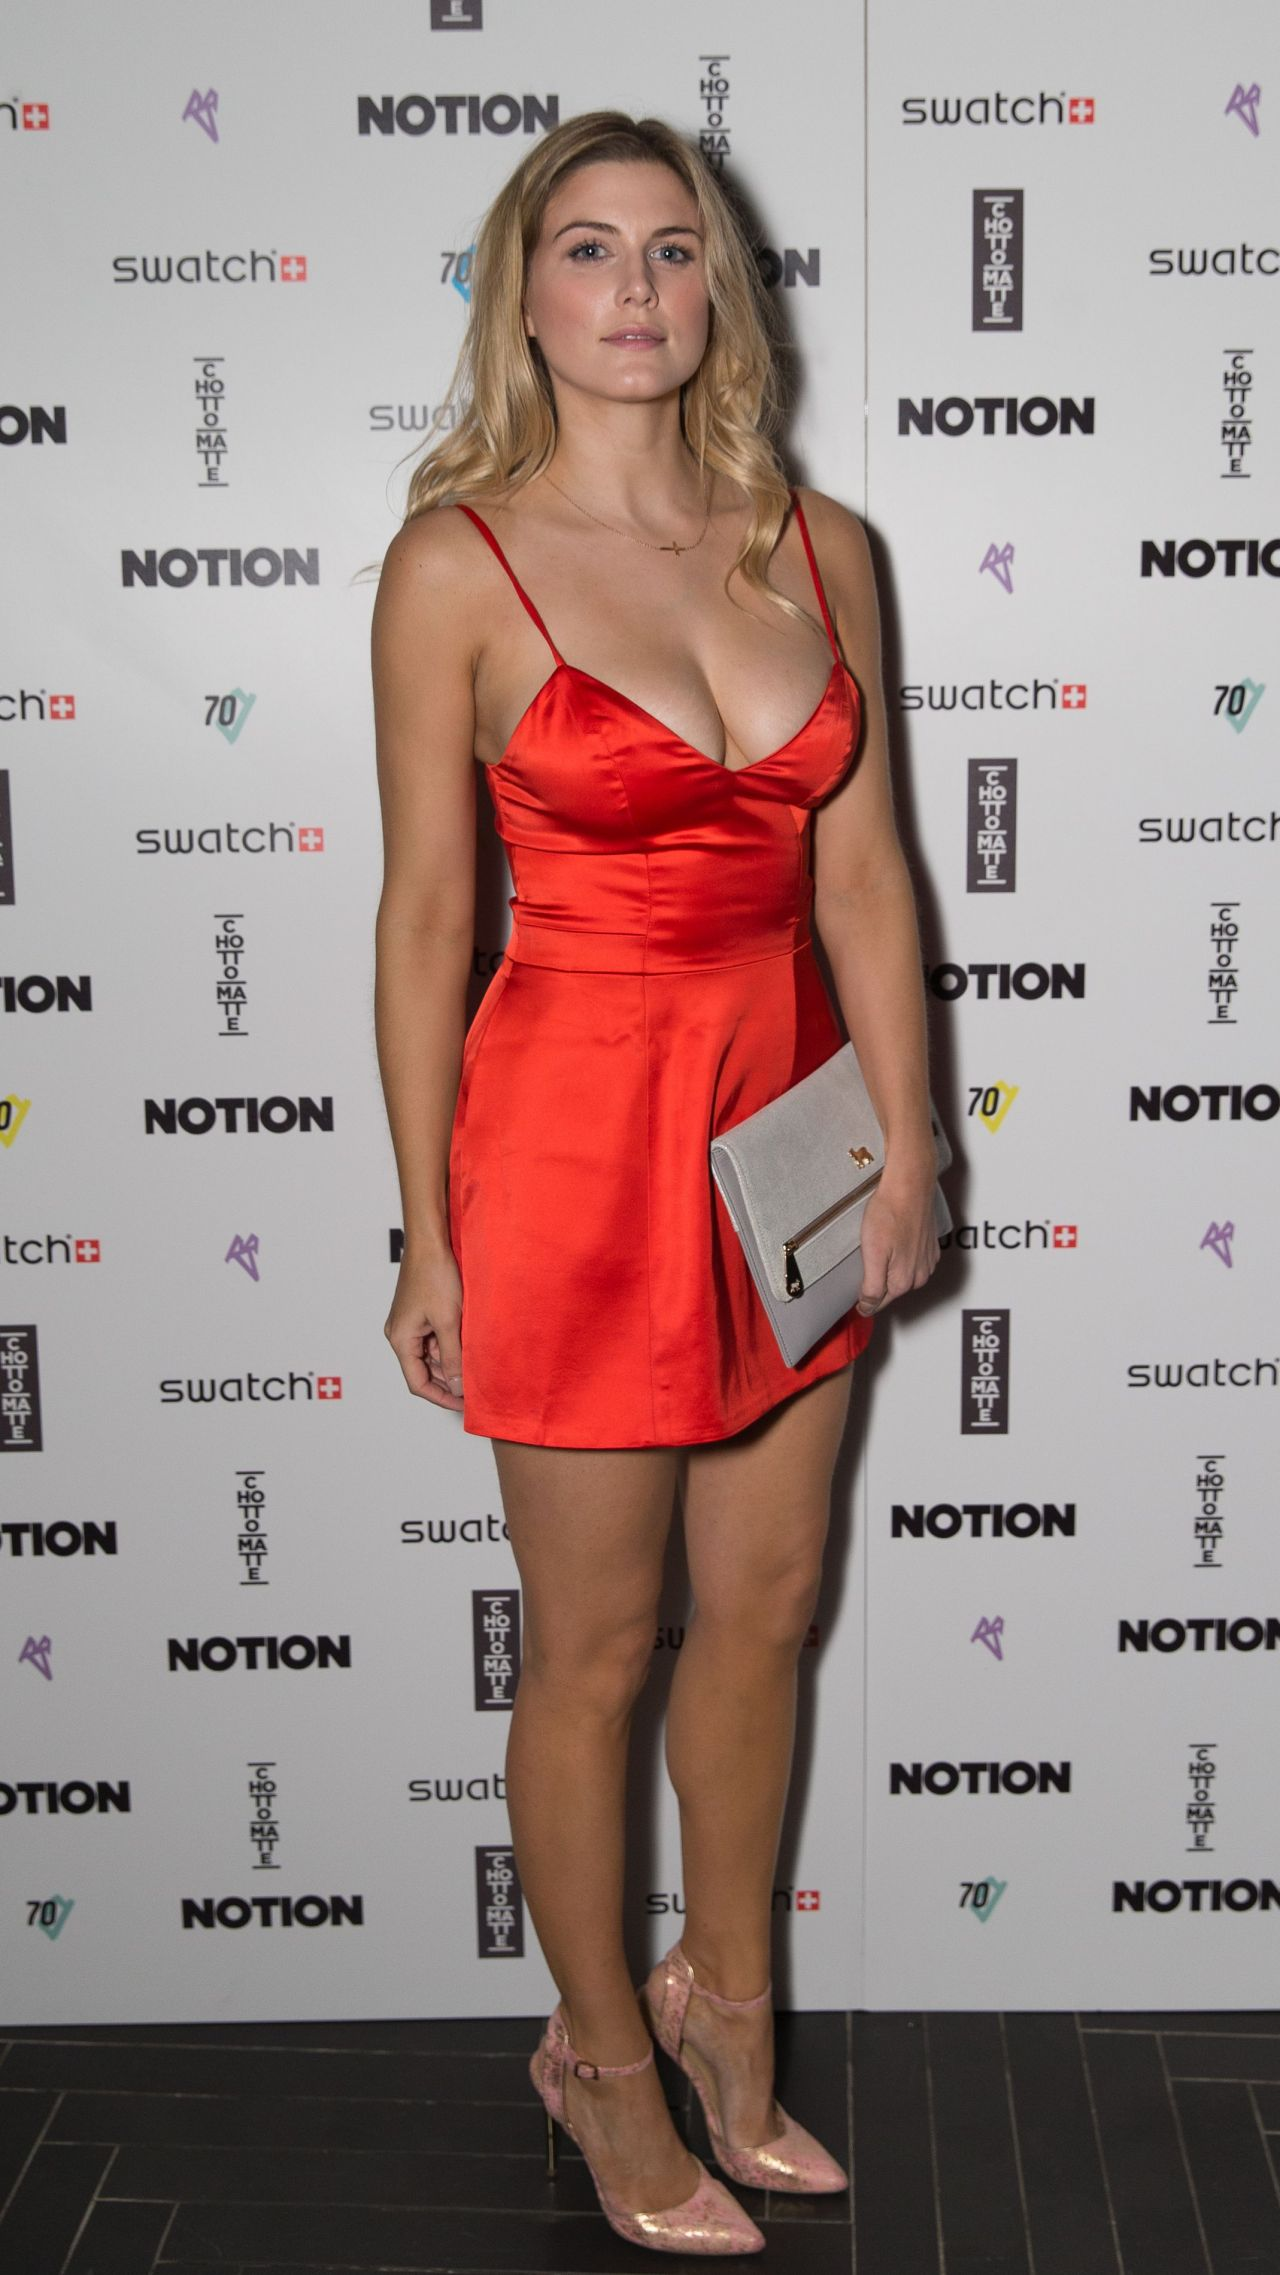 Ashley James Hot Style - Notion Magazine X Swatch Issue 70 Launch Party in London • CelebMafia